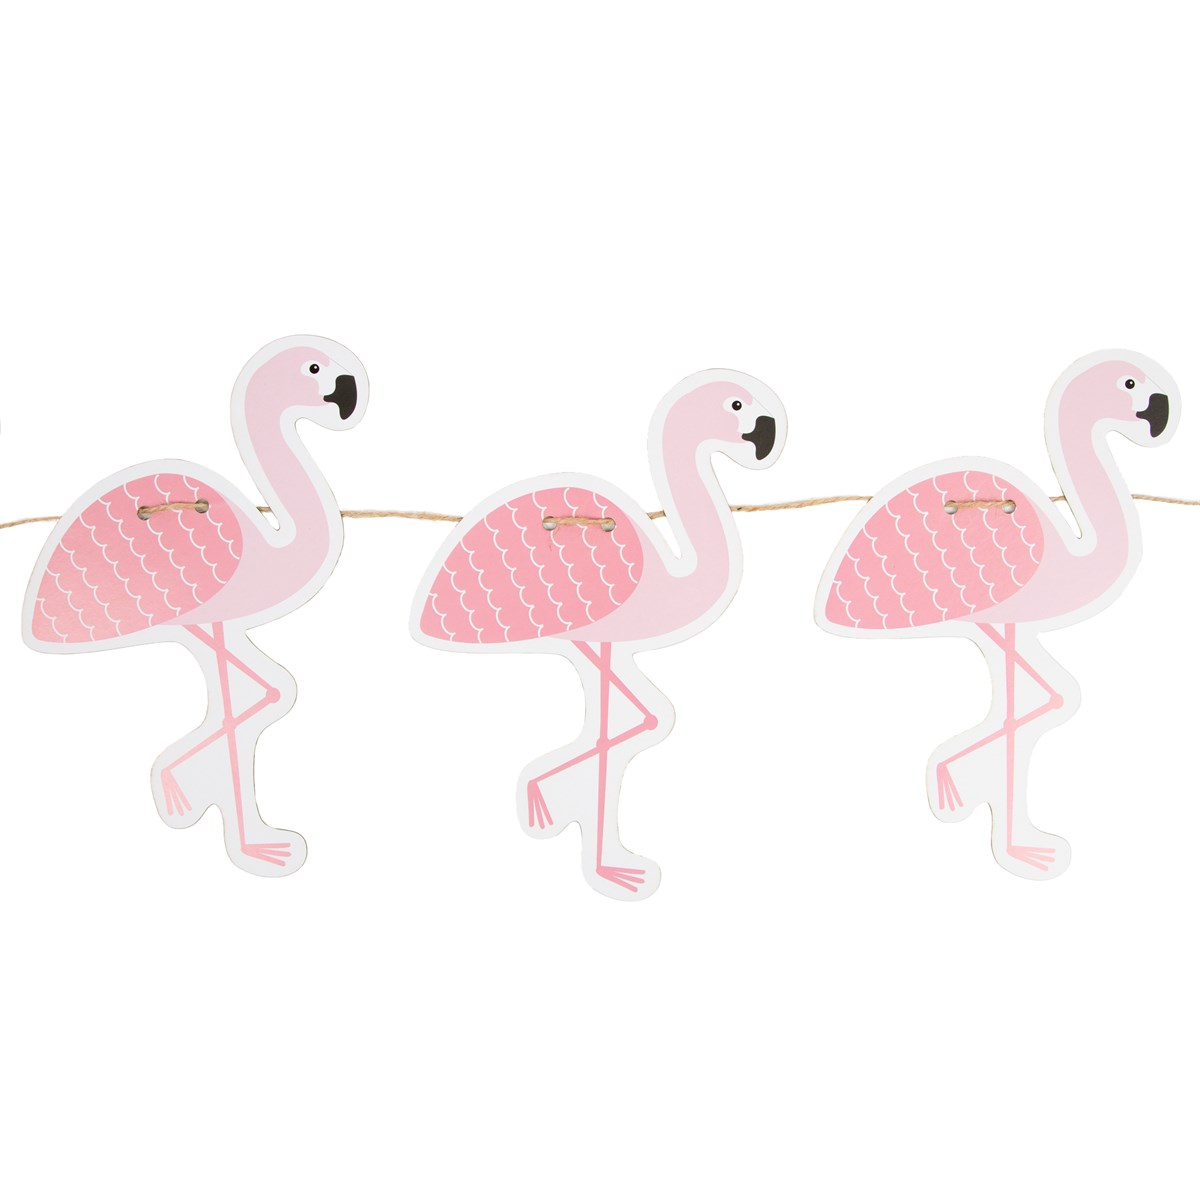 Girlande Flamingo von Sass & Belle - www.shop-hygge.de